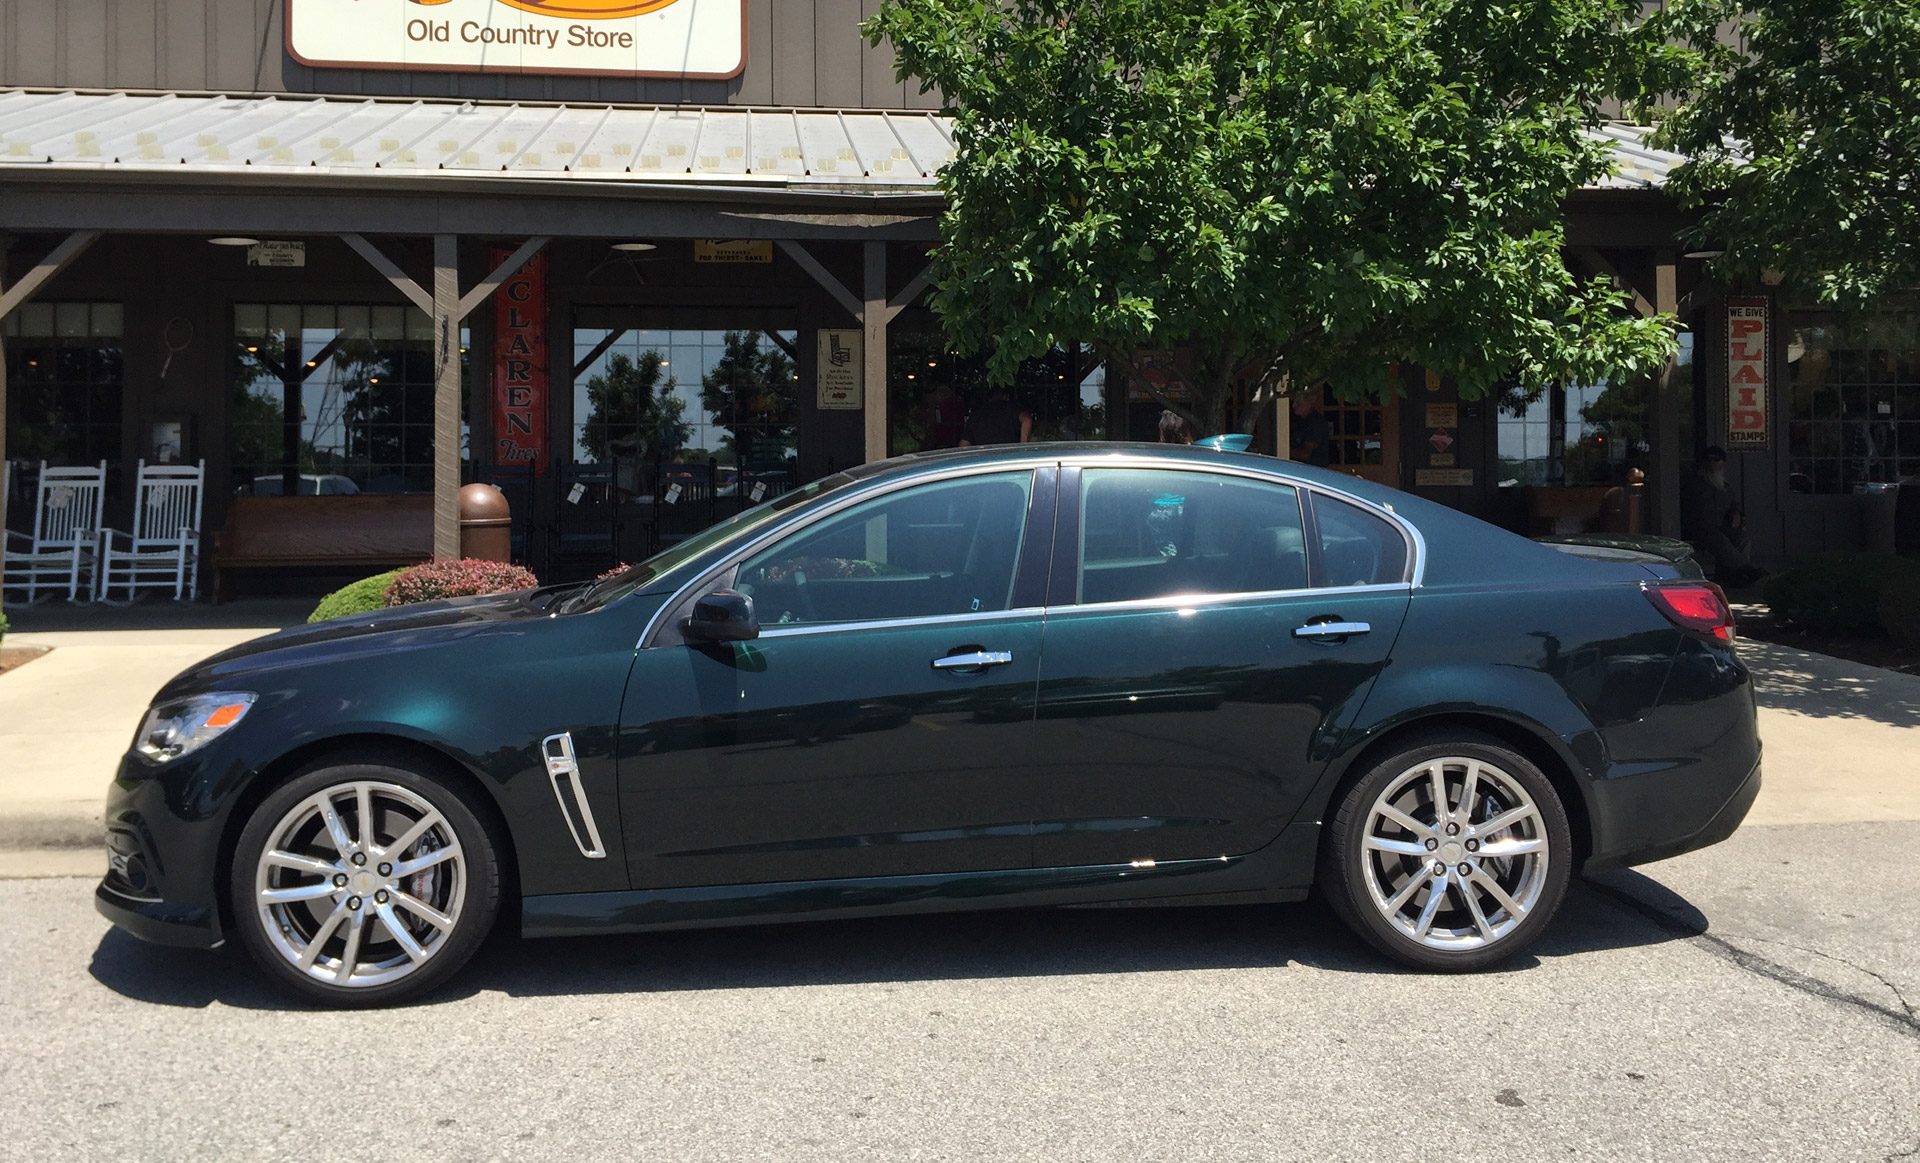 Notes From The Driveway: 2015 Chevrolet SS